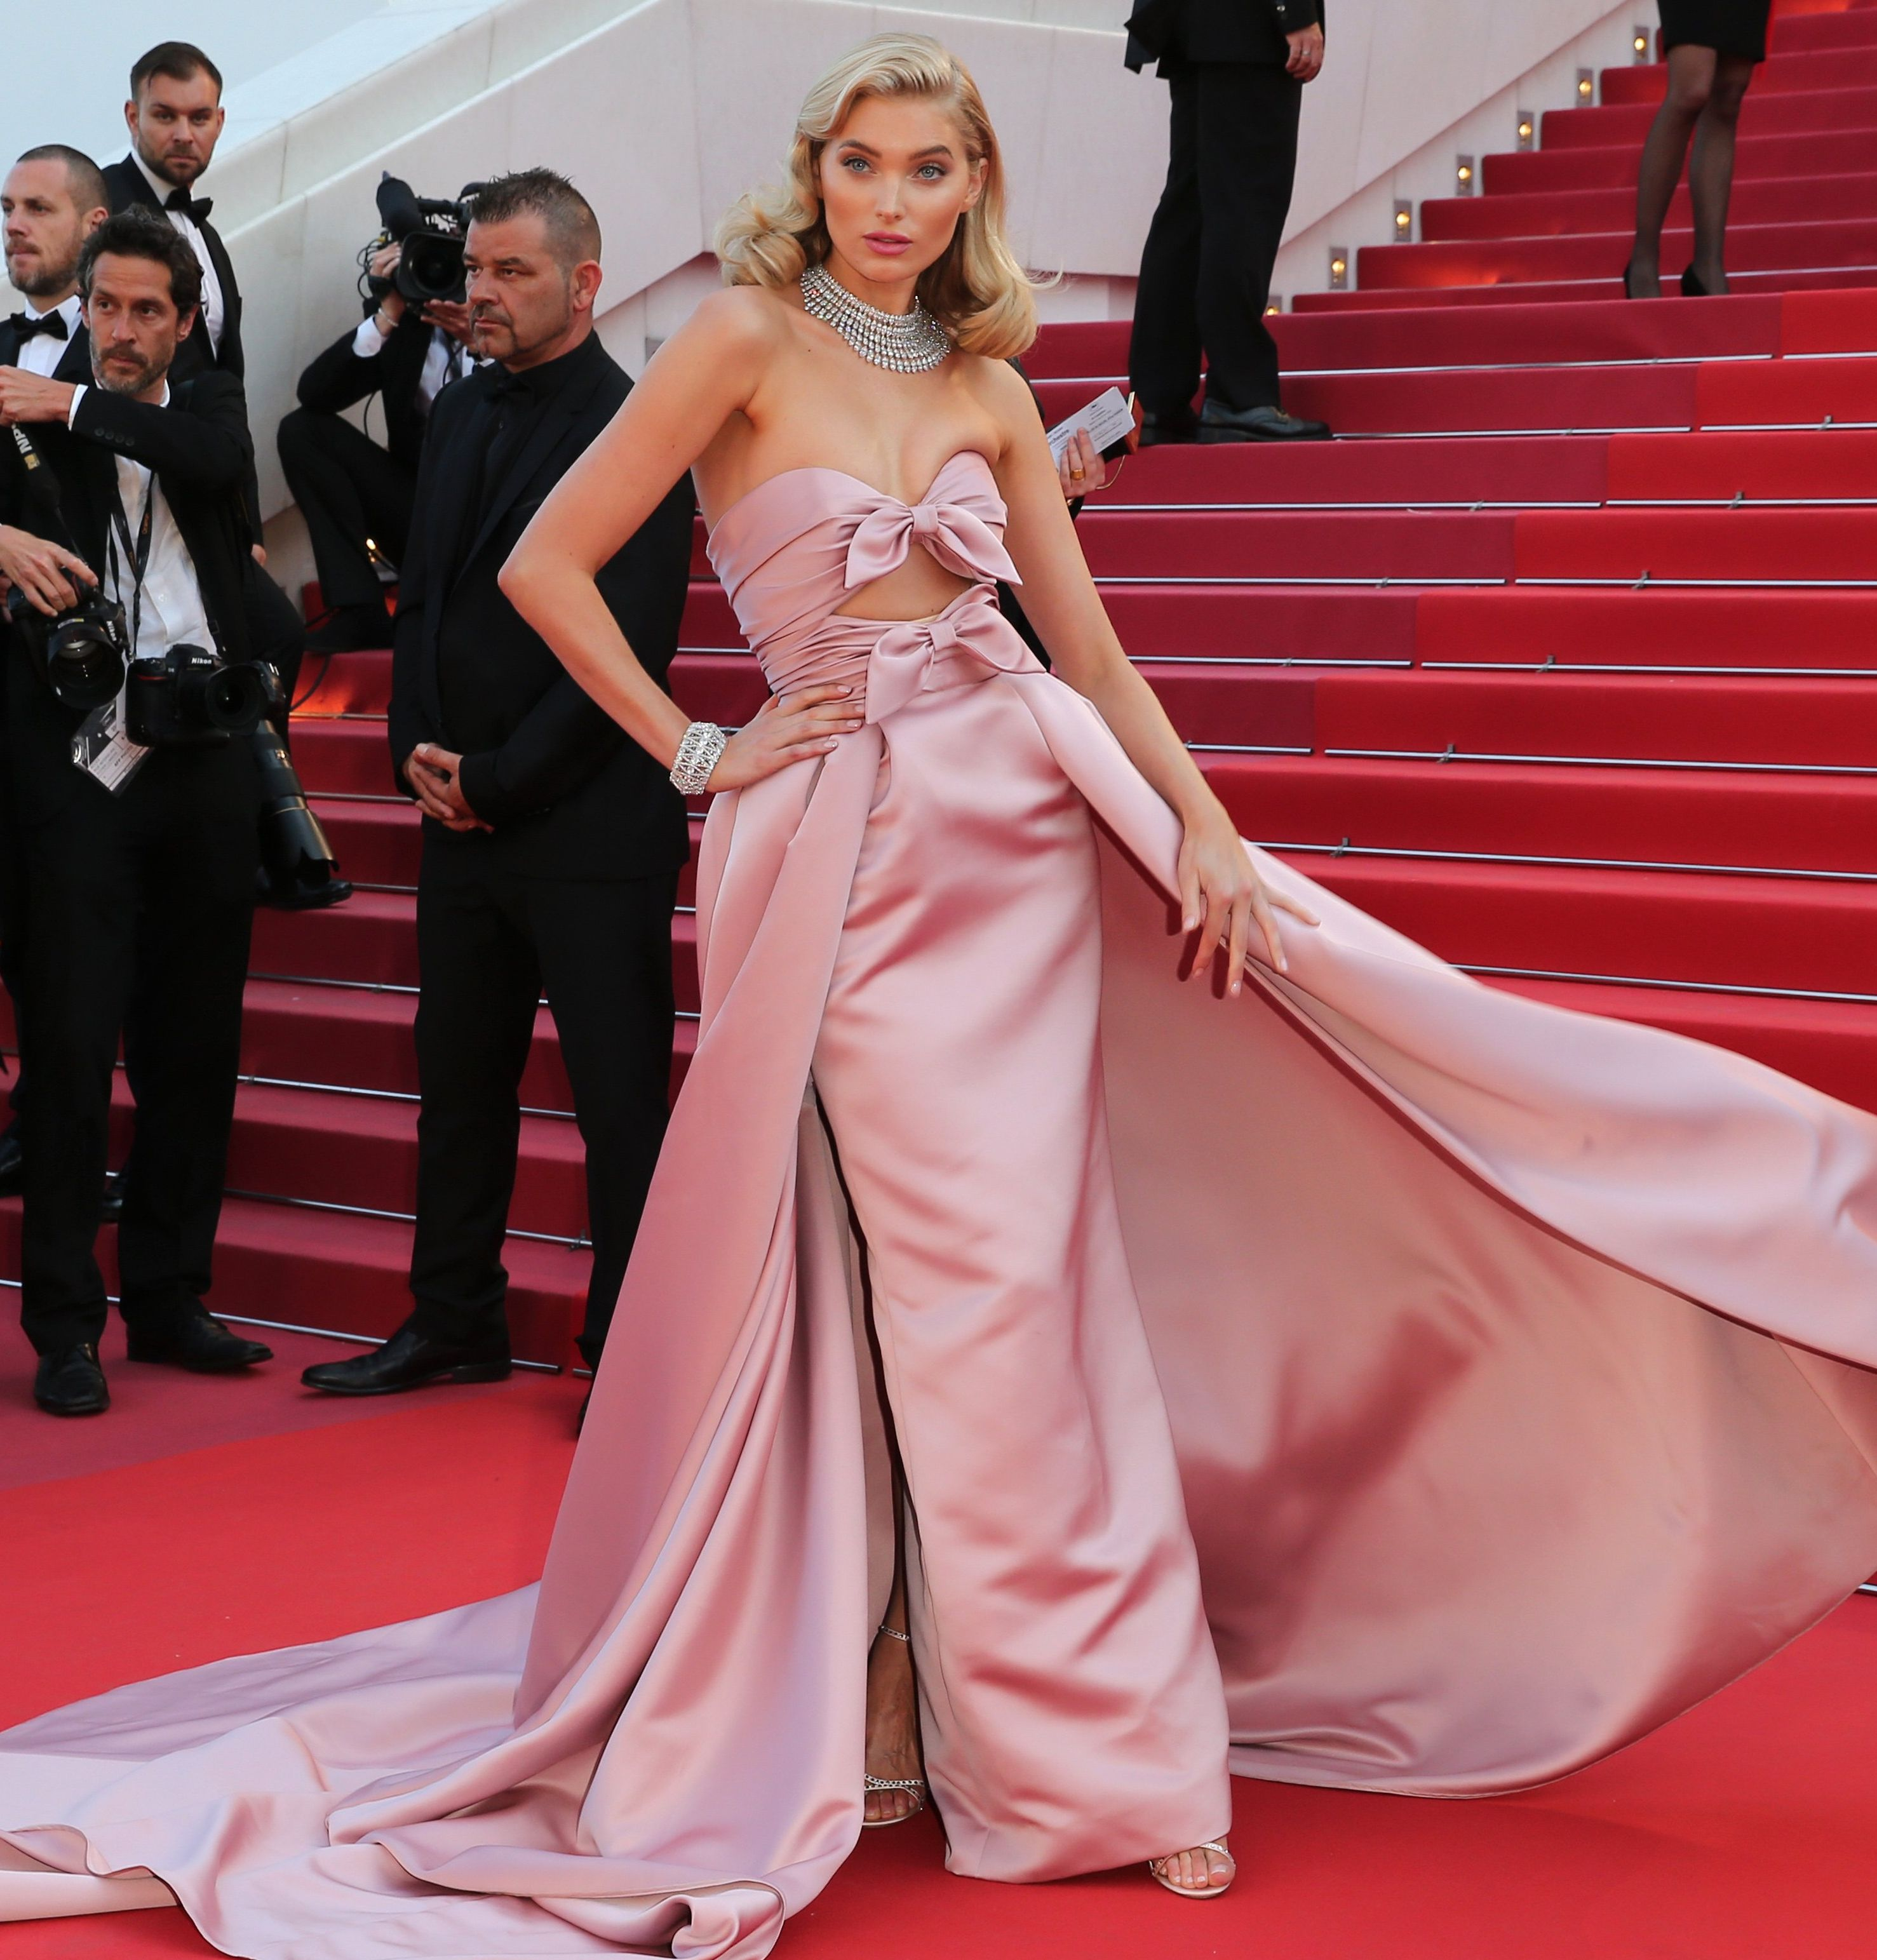 elsa hosk at the cannes film festival in a madonna inspired dress